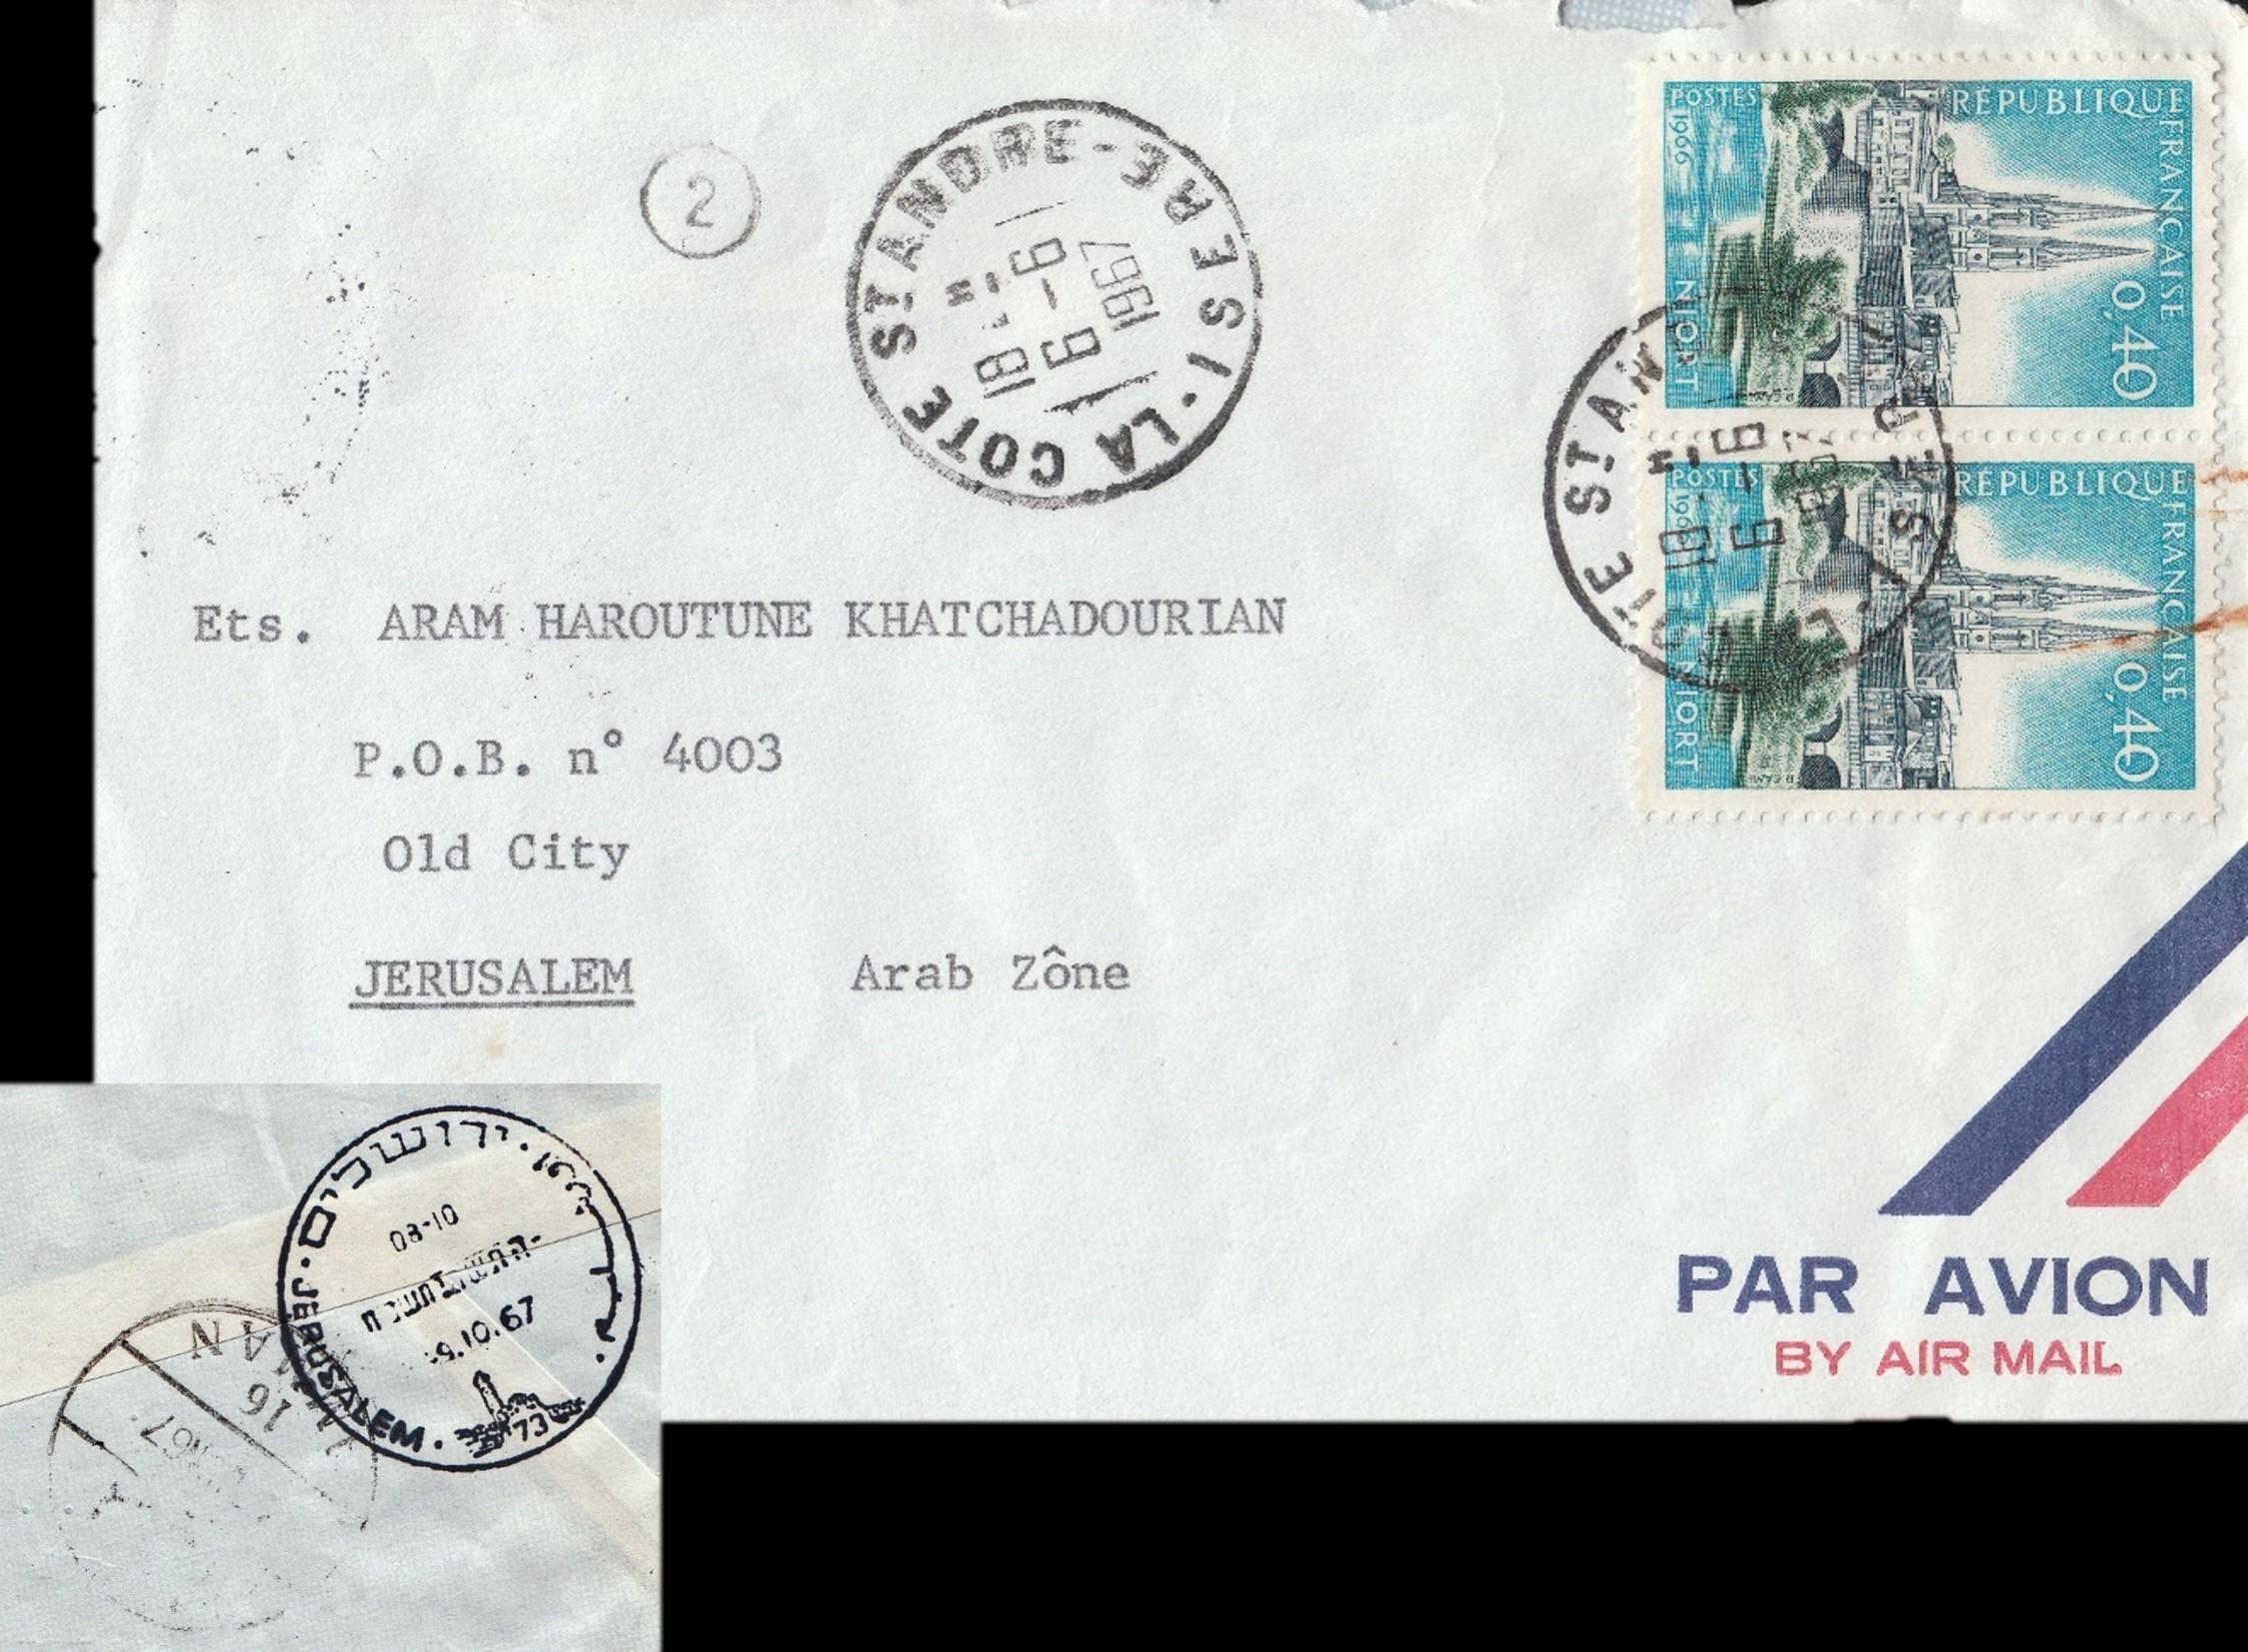 Jordanian start & post-1967 War mail to Israel via Red Cross: 6-6-1967 airmail cover from LA COTE ST ANDRE France to Old City JERUSALEM